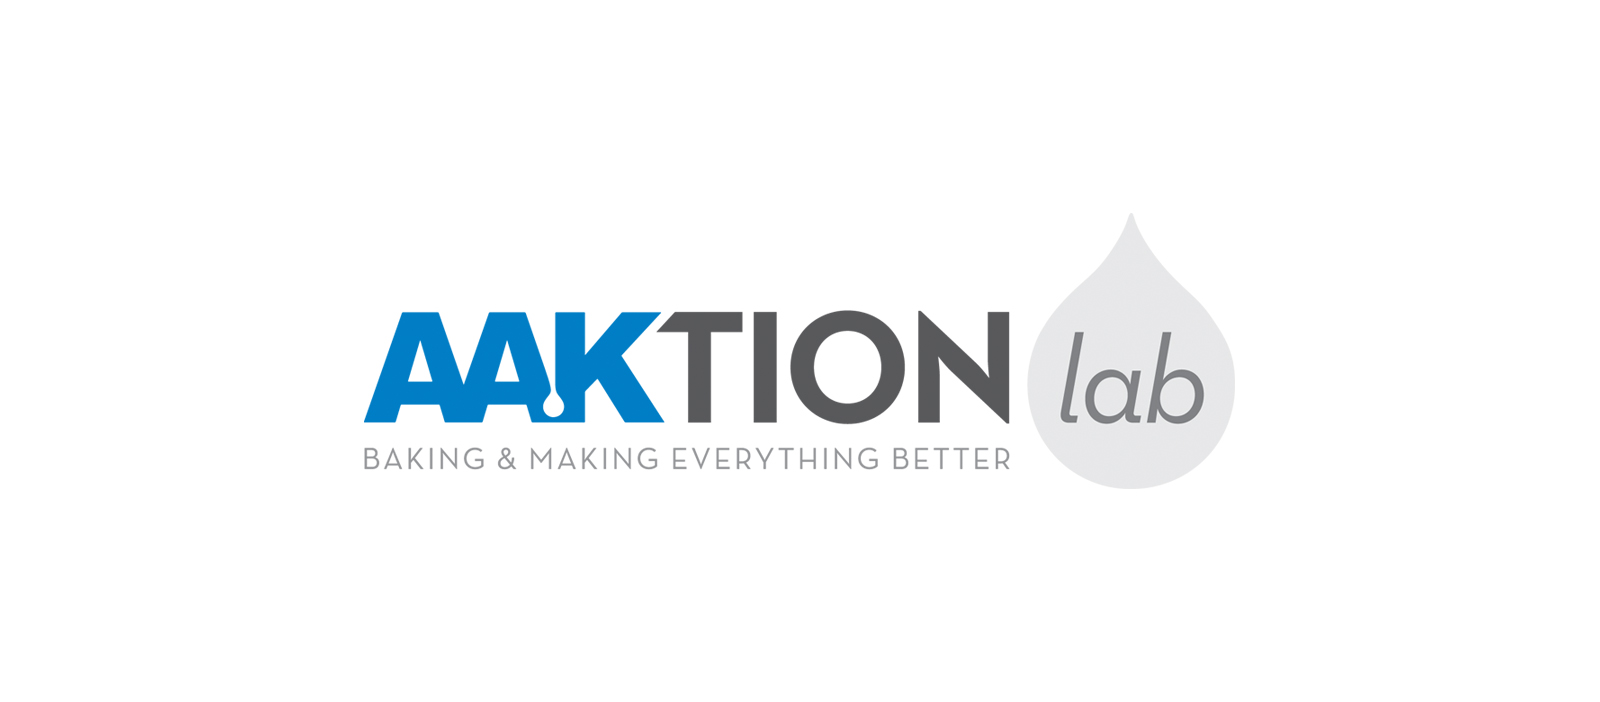 AAKtion Lab Baking & Making Everything Better Logo